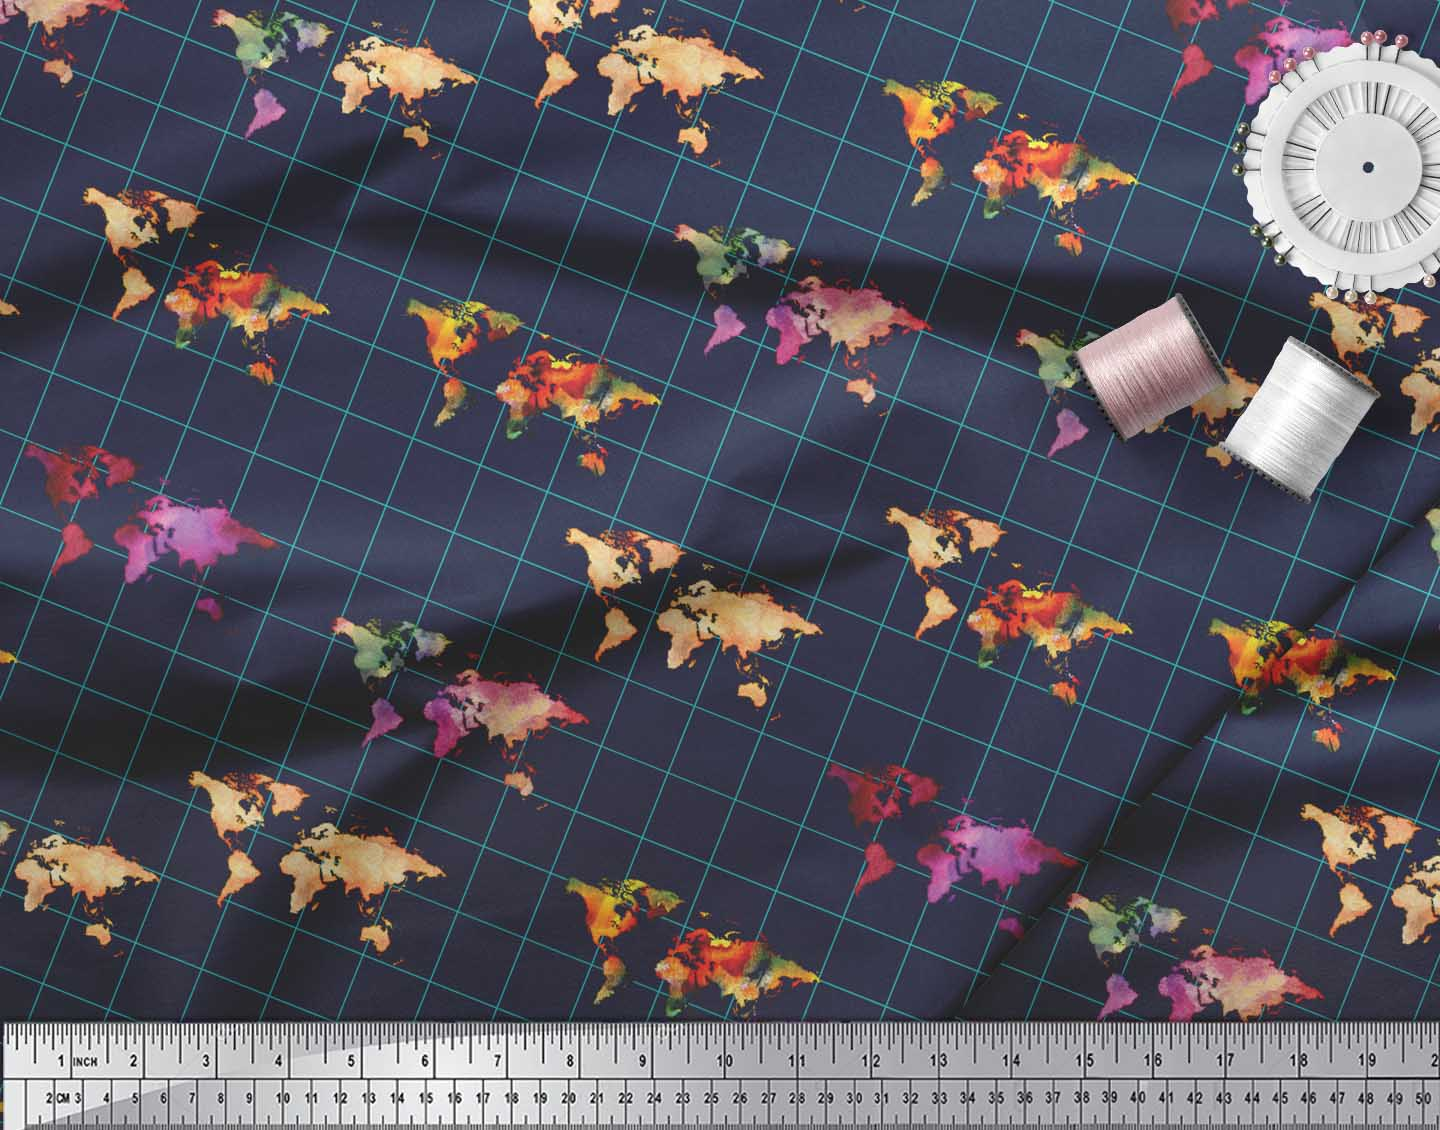 Soimoi-Blue-Cotton-Poplin-Fabric-Check-amp-World-Map-Print-Fabric-Npk thumbnail 3